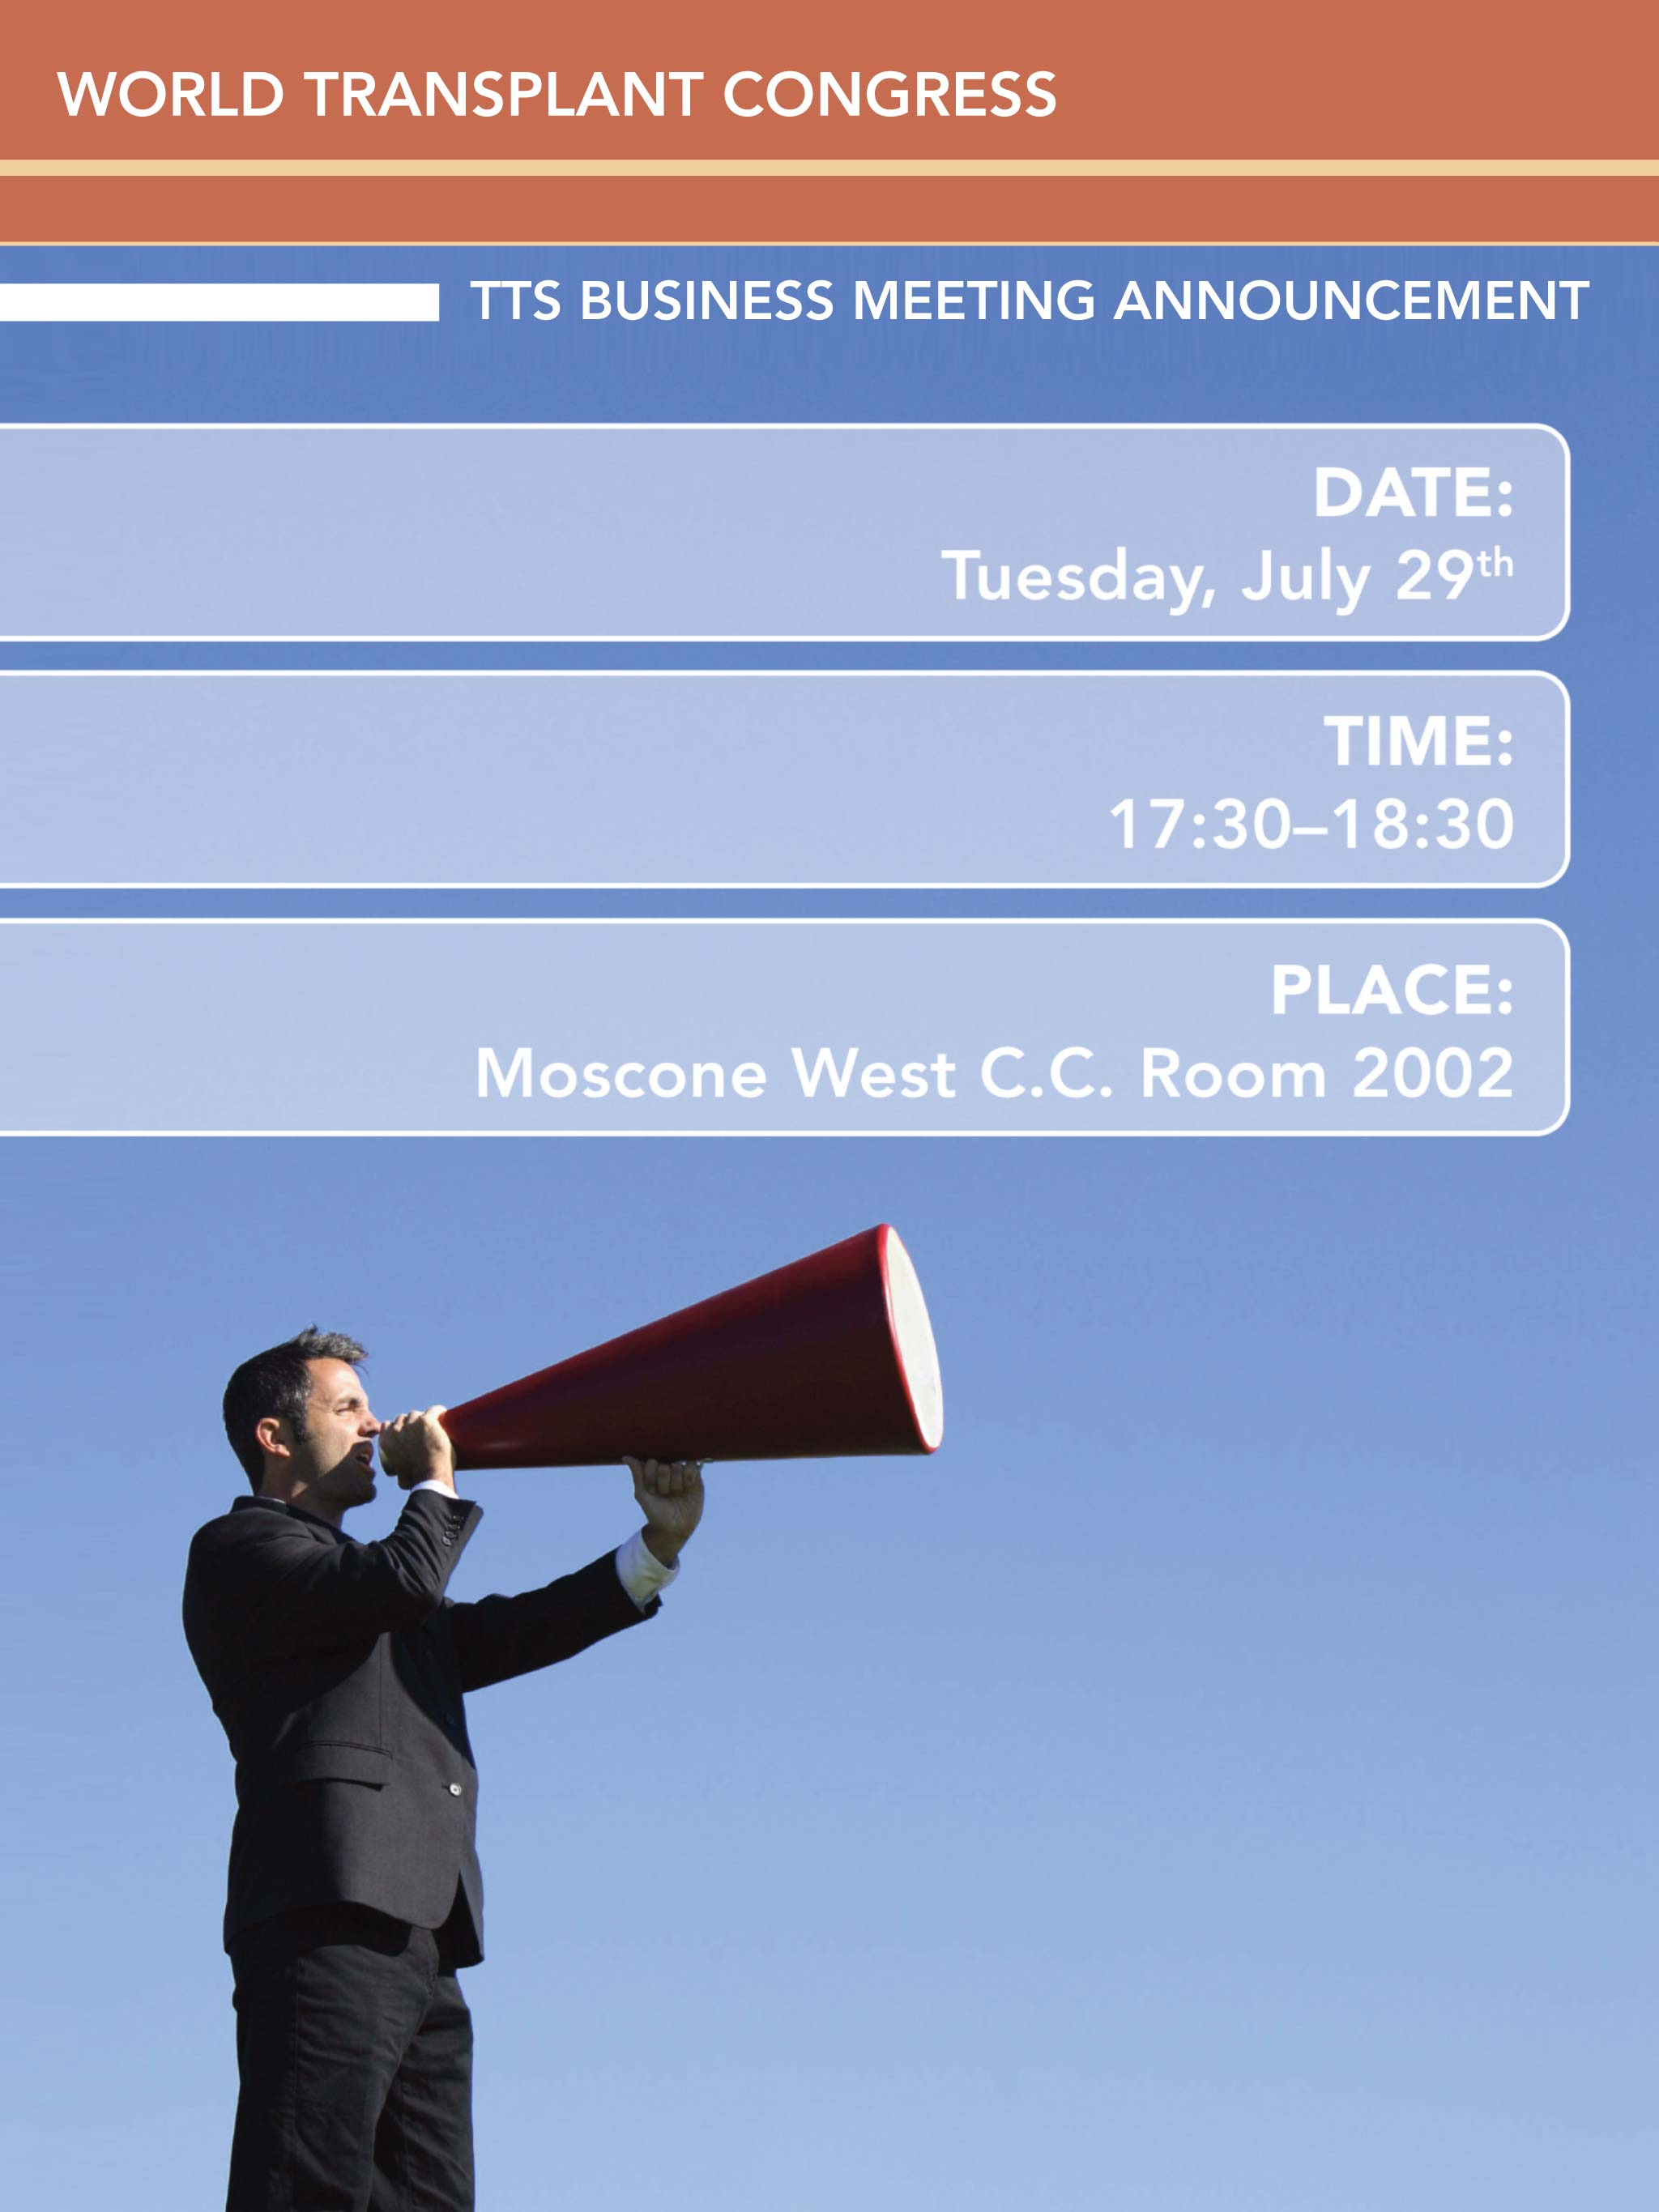 TTS BUSINESS MEETING ANNOUNCEMENT